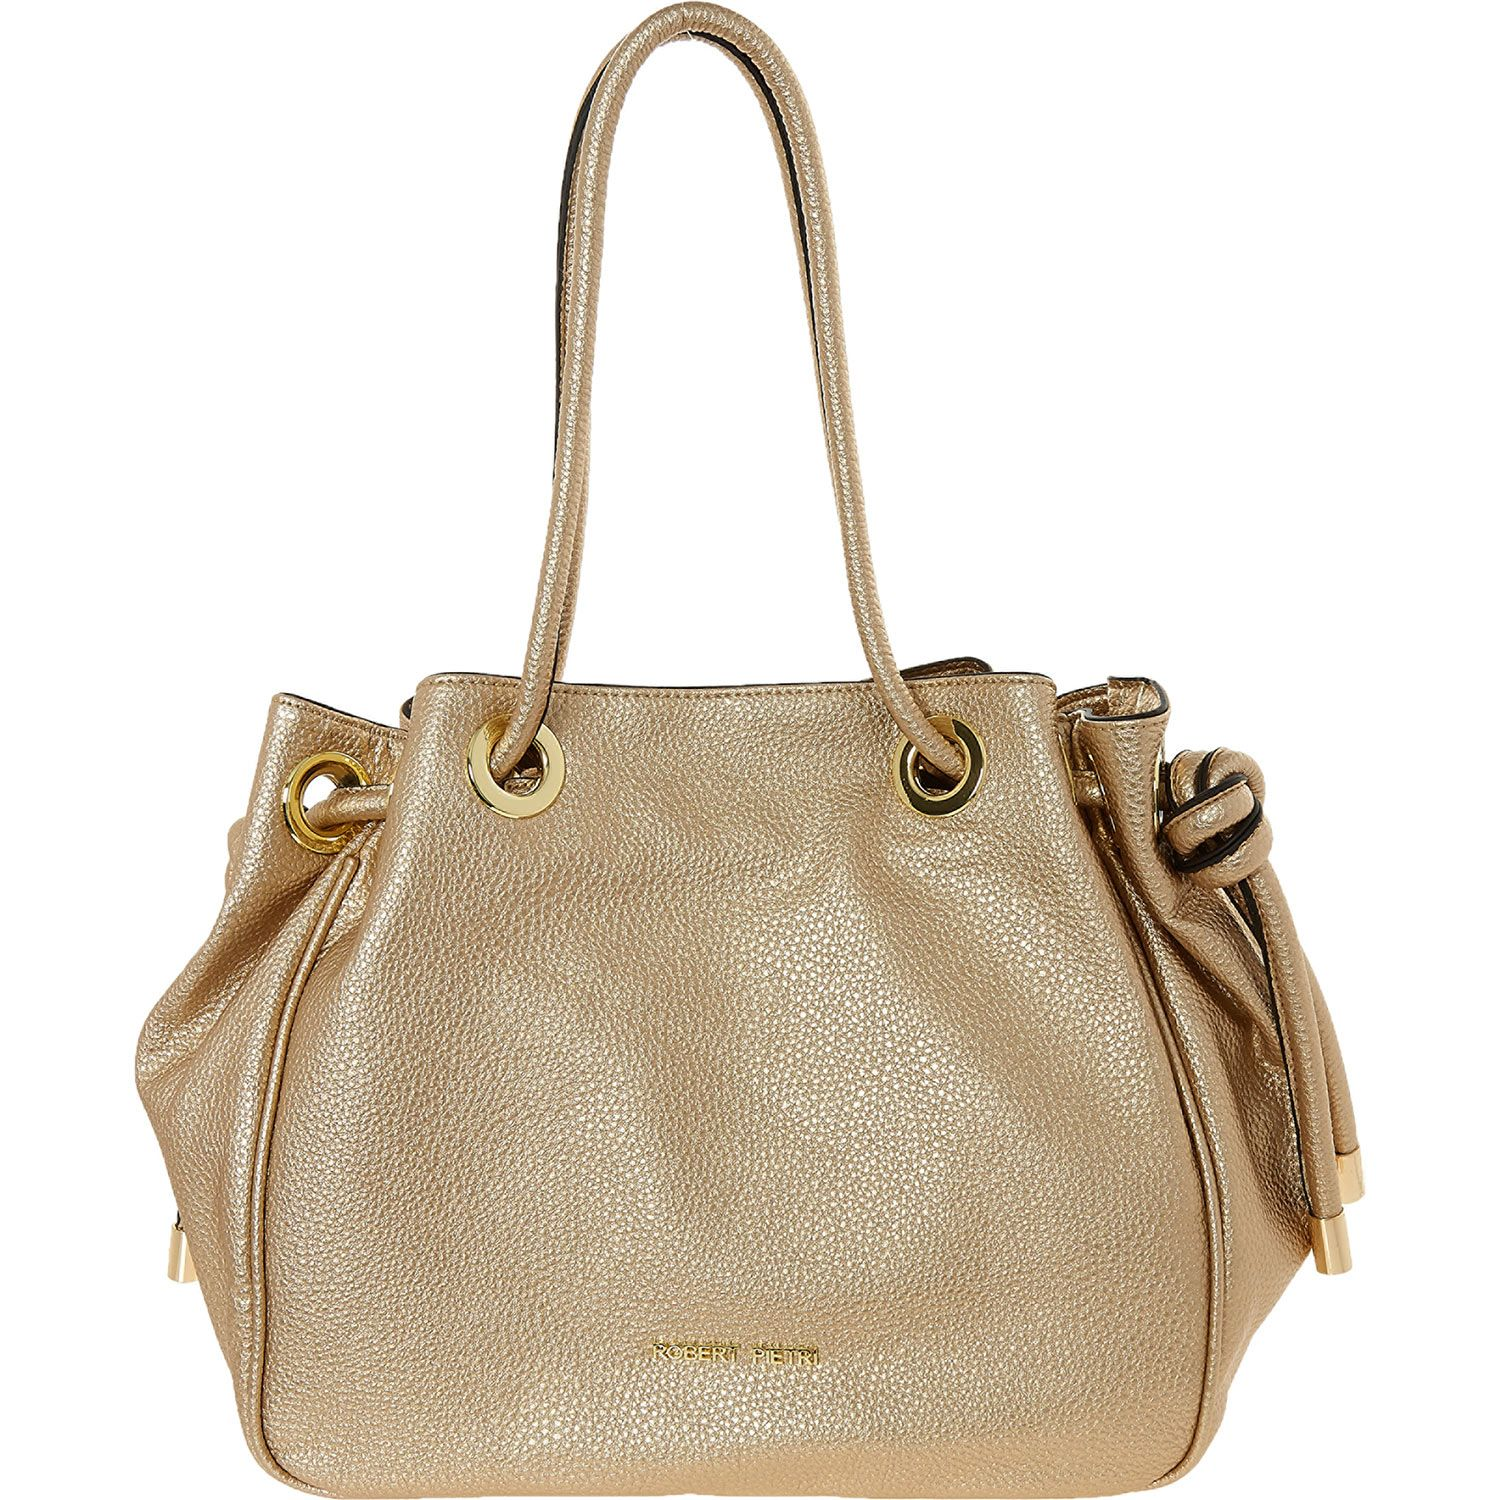 Robert Pietri Gold Tone Drawstring Per Bag Tk Ma